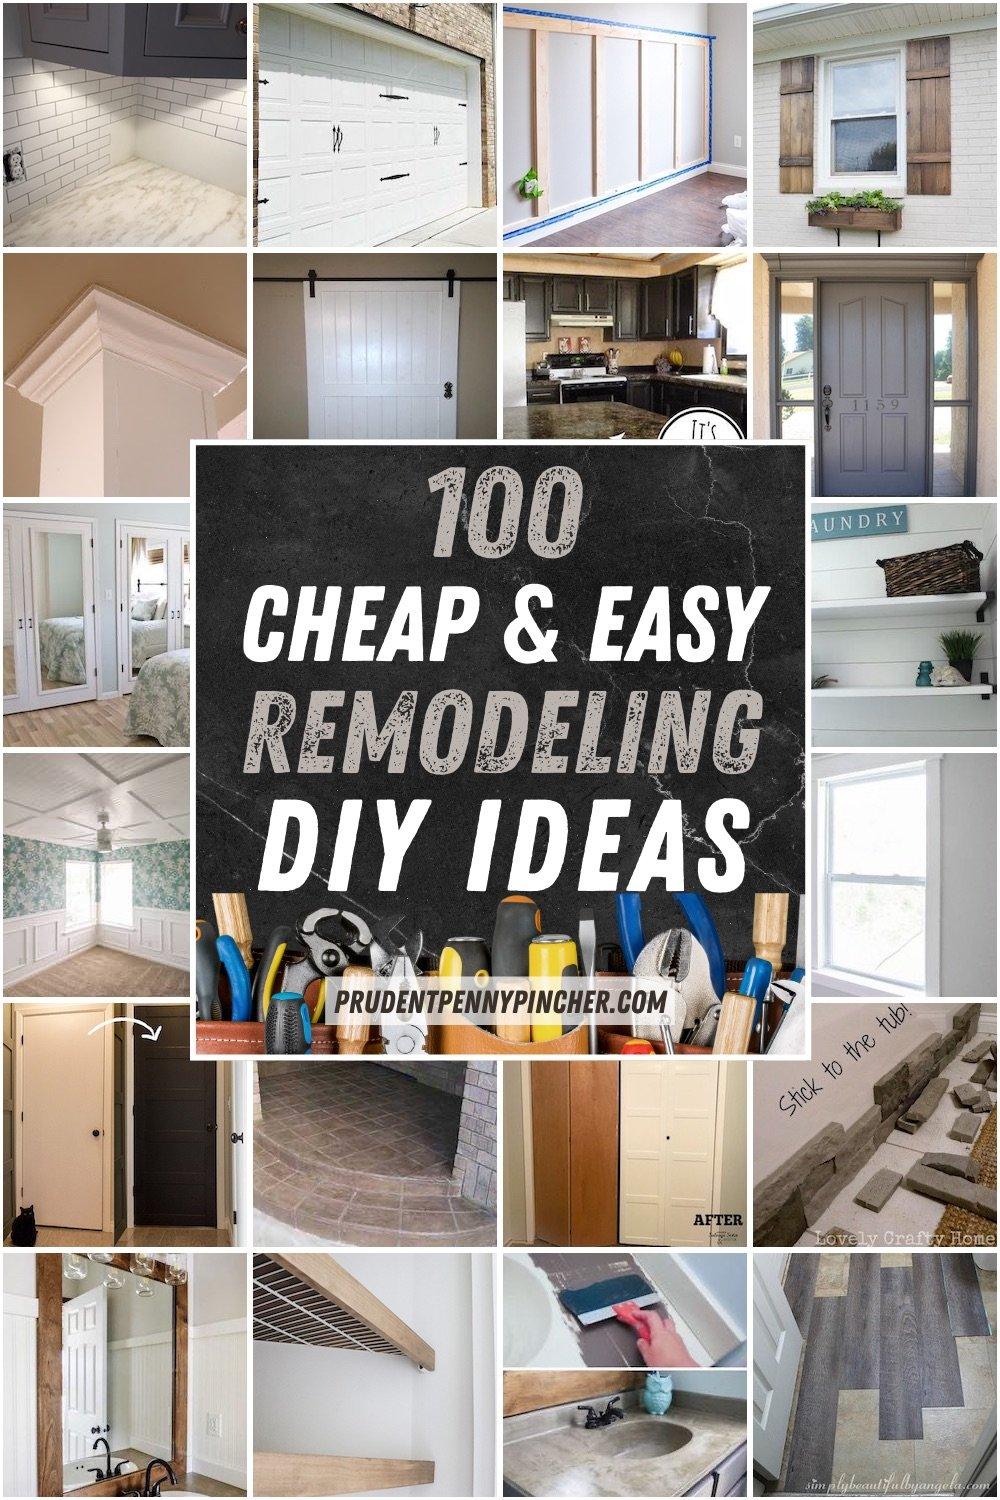 100 Diy Remodeling Ideas On A Budget Prudent Penny Pincher